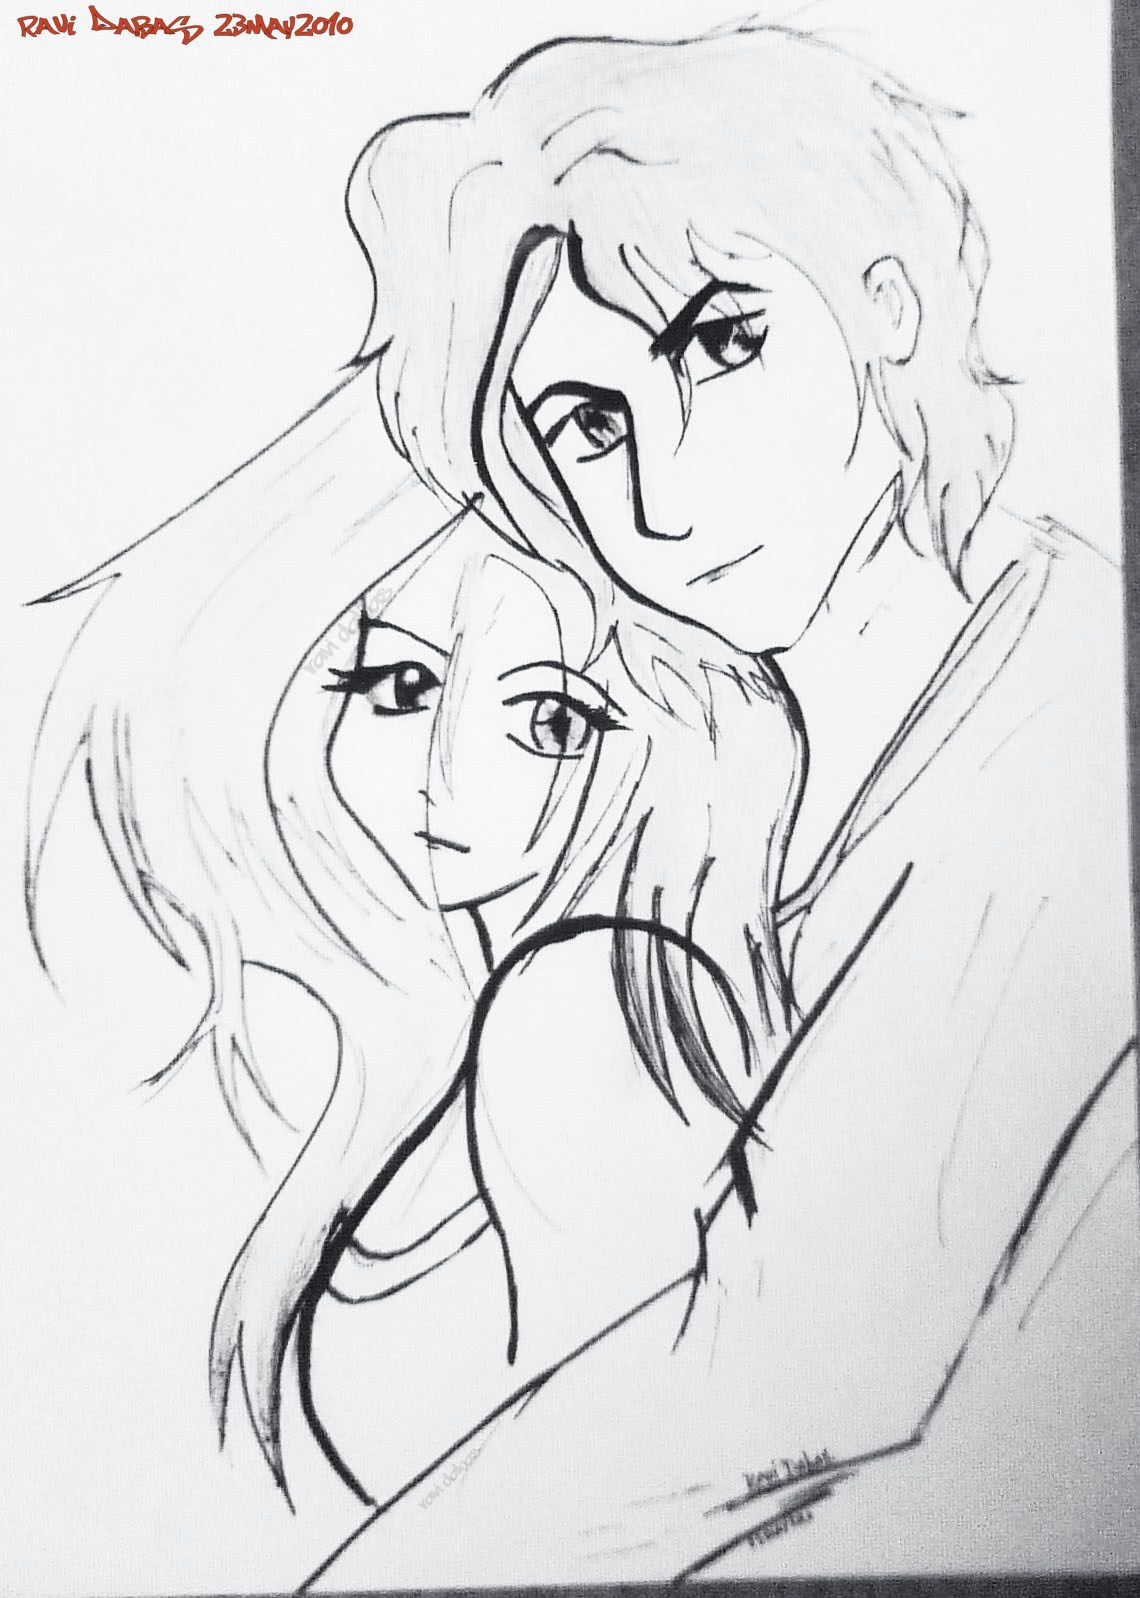 Romance Anime Cartoons Romantic Couple Sketch Of A Young Guy And A